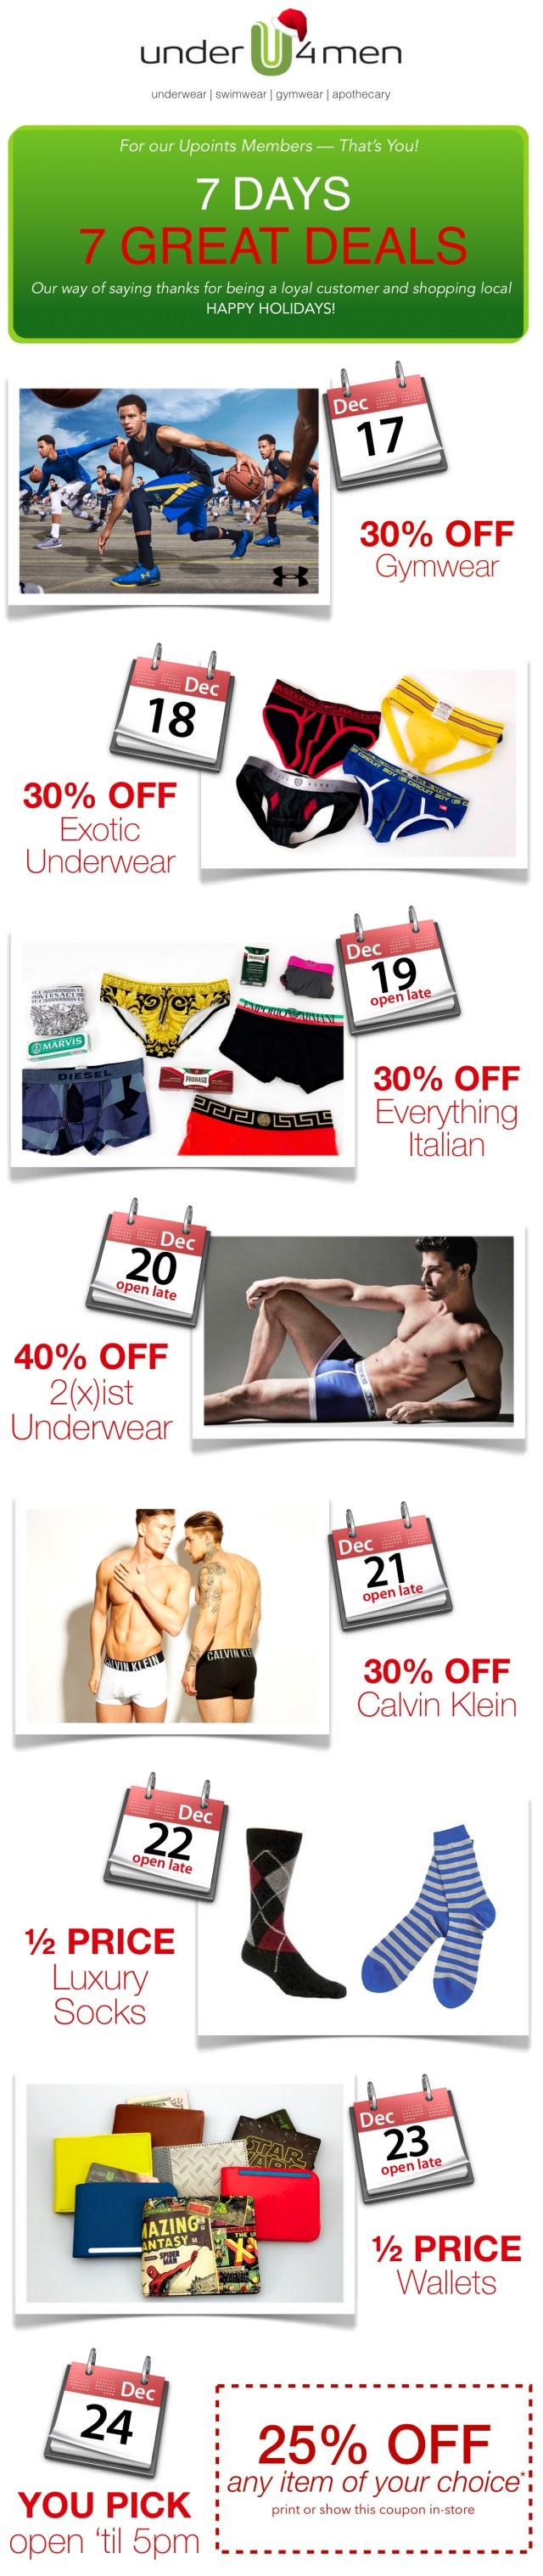 underwear sale, gymwear sale, swimwear sale, underu4men